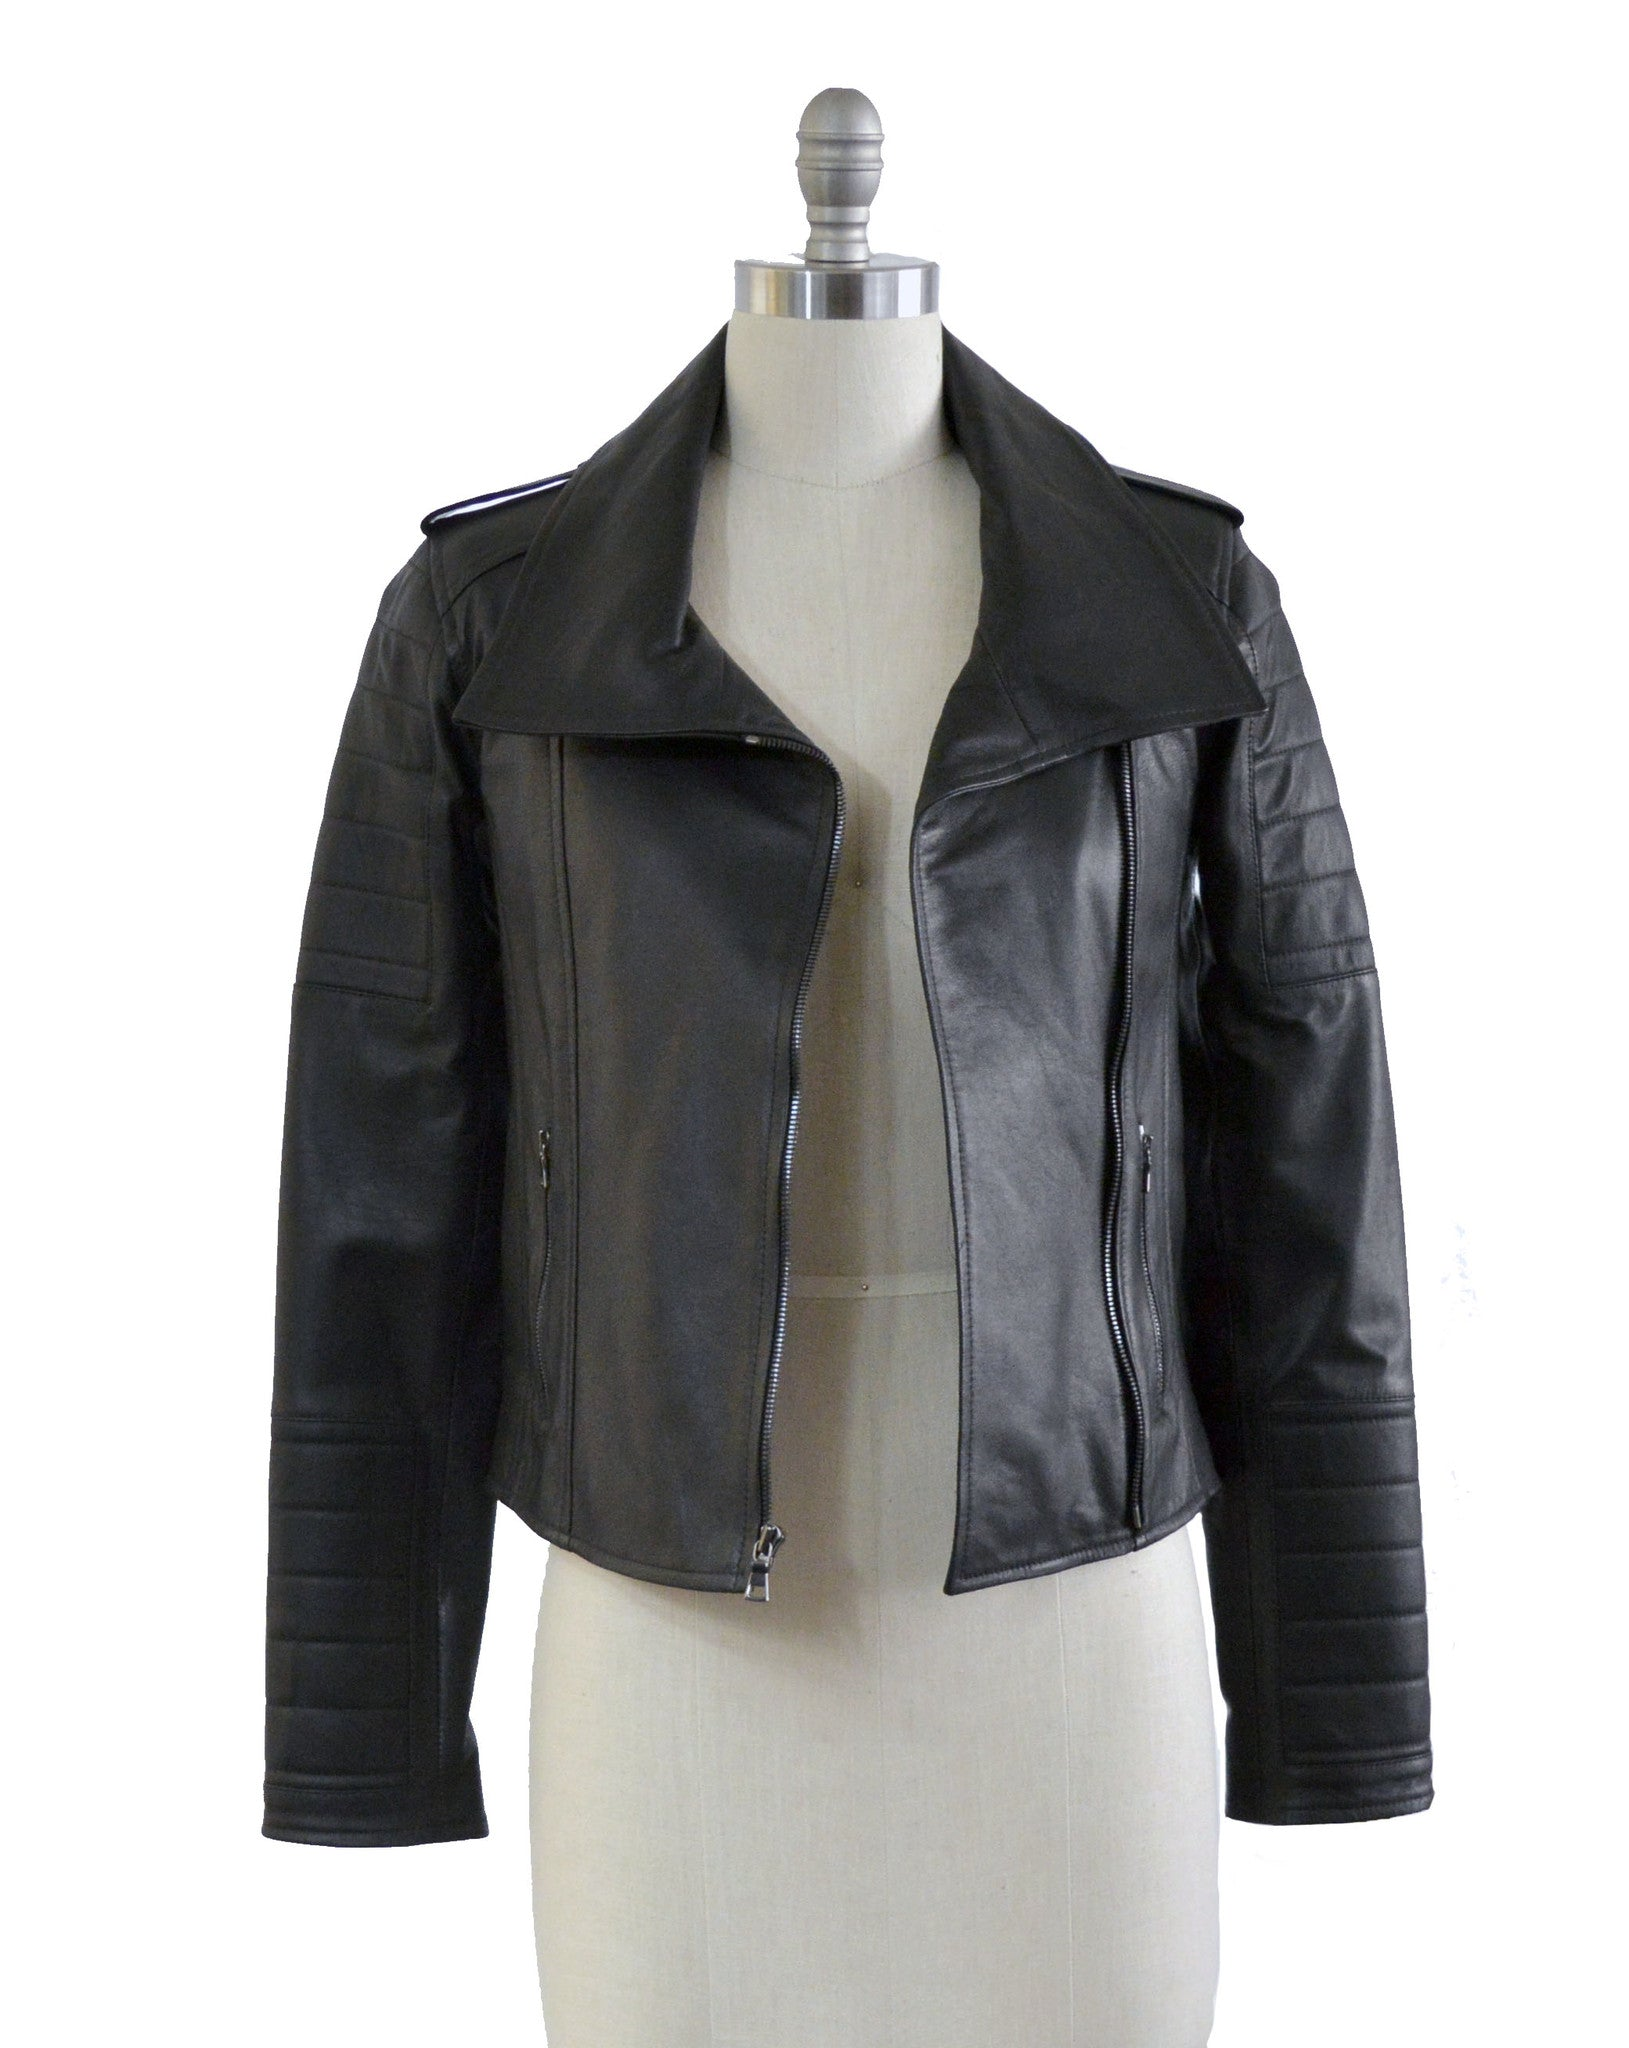 The Quilted Leather Jacket